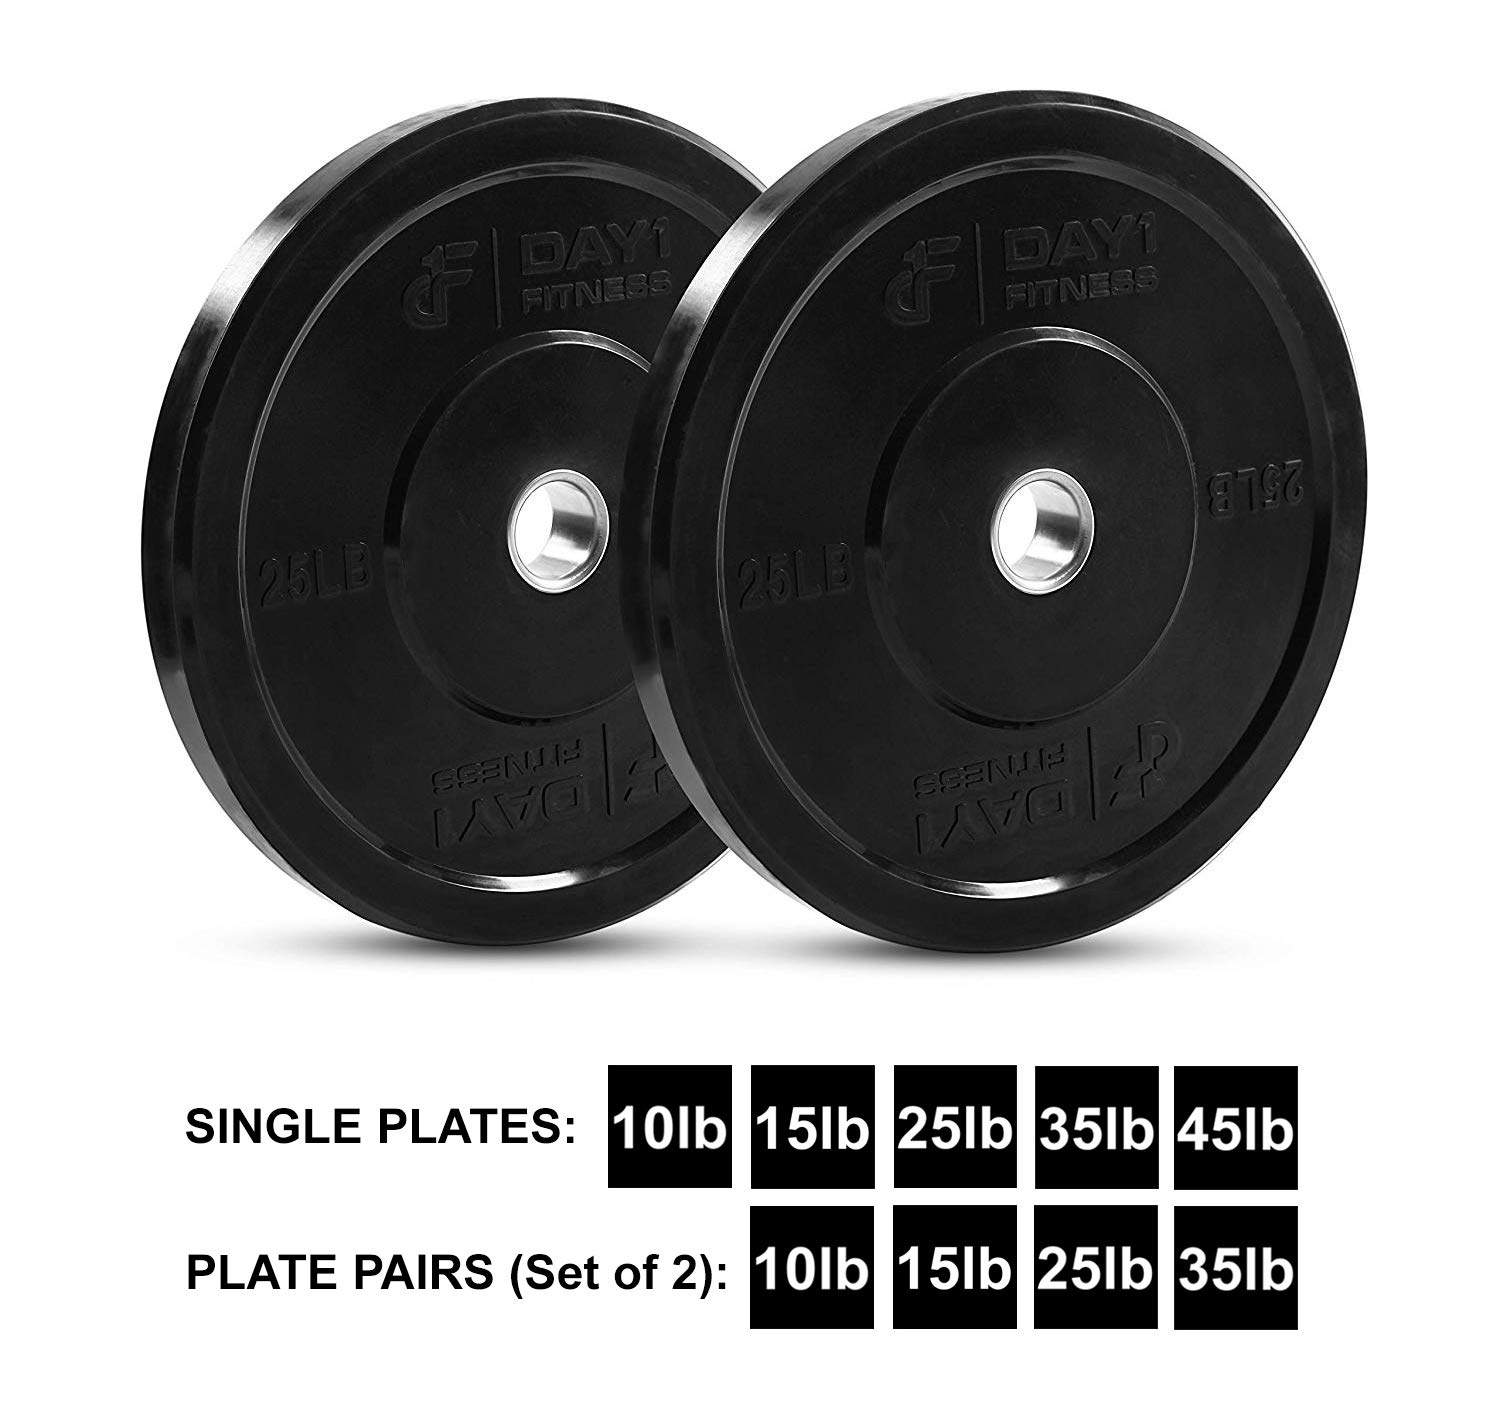 "Day 1 Fitness Olympic Bumper Weighted Plate 2"" for Barbells, Bars – 25 lb Set of 2 Plates - Shock-Absorbing, Minimal Bounce Steel Weights with Bumpers for Lifting, Strength Training, and Working Out by Day 1 Fitness (Image #1)"